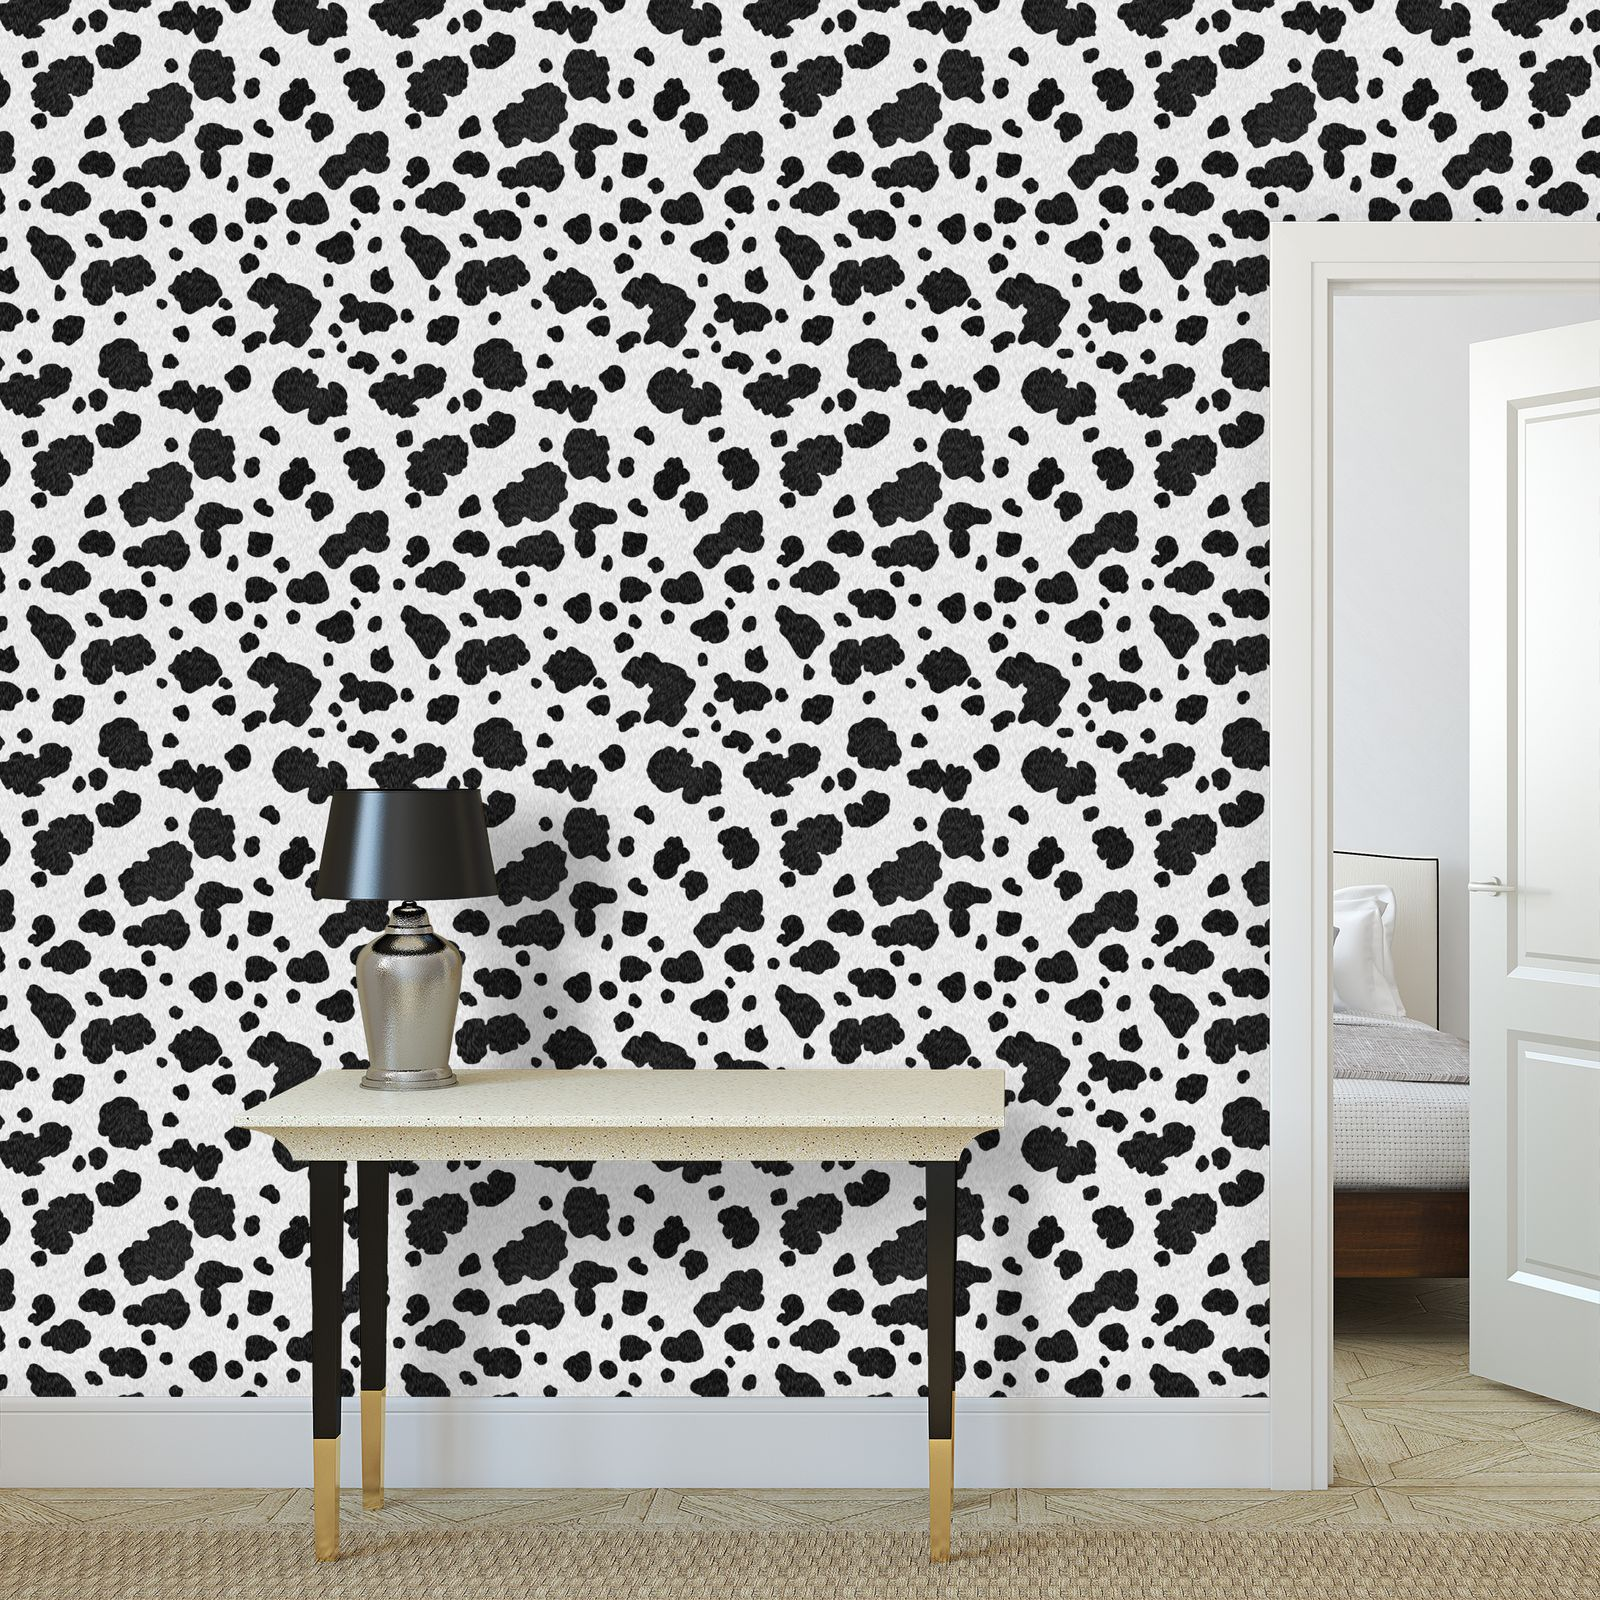 101 - Wallpaper Rolls - Dalmatian coat, spotted dog hair, animal print, black and white spots, puppies, animals, dog lovers gift - design by Tiana Lofd